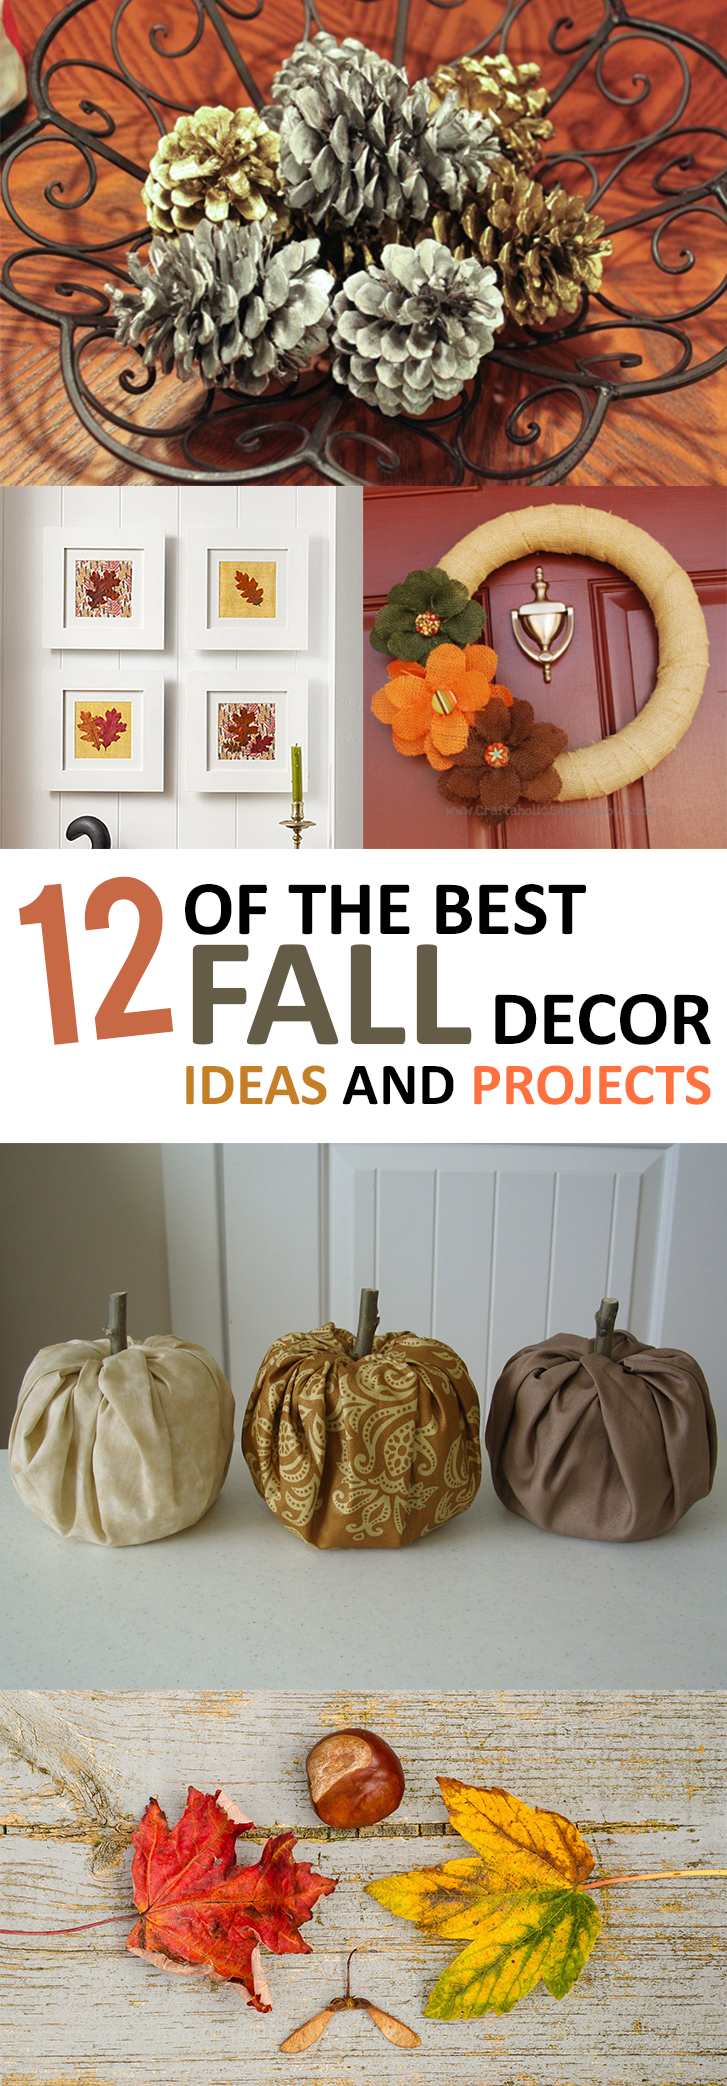 12 of the Best Fall Decor Ideas and Projects